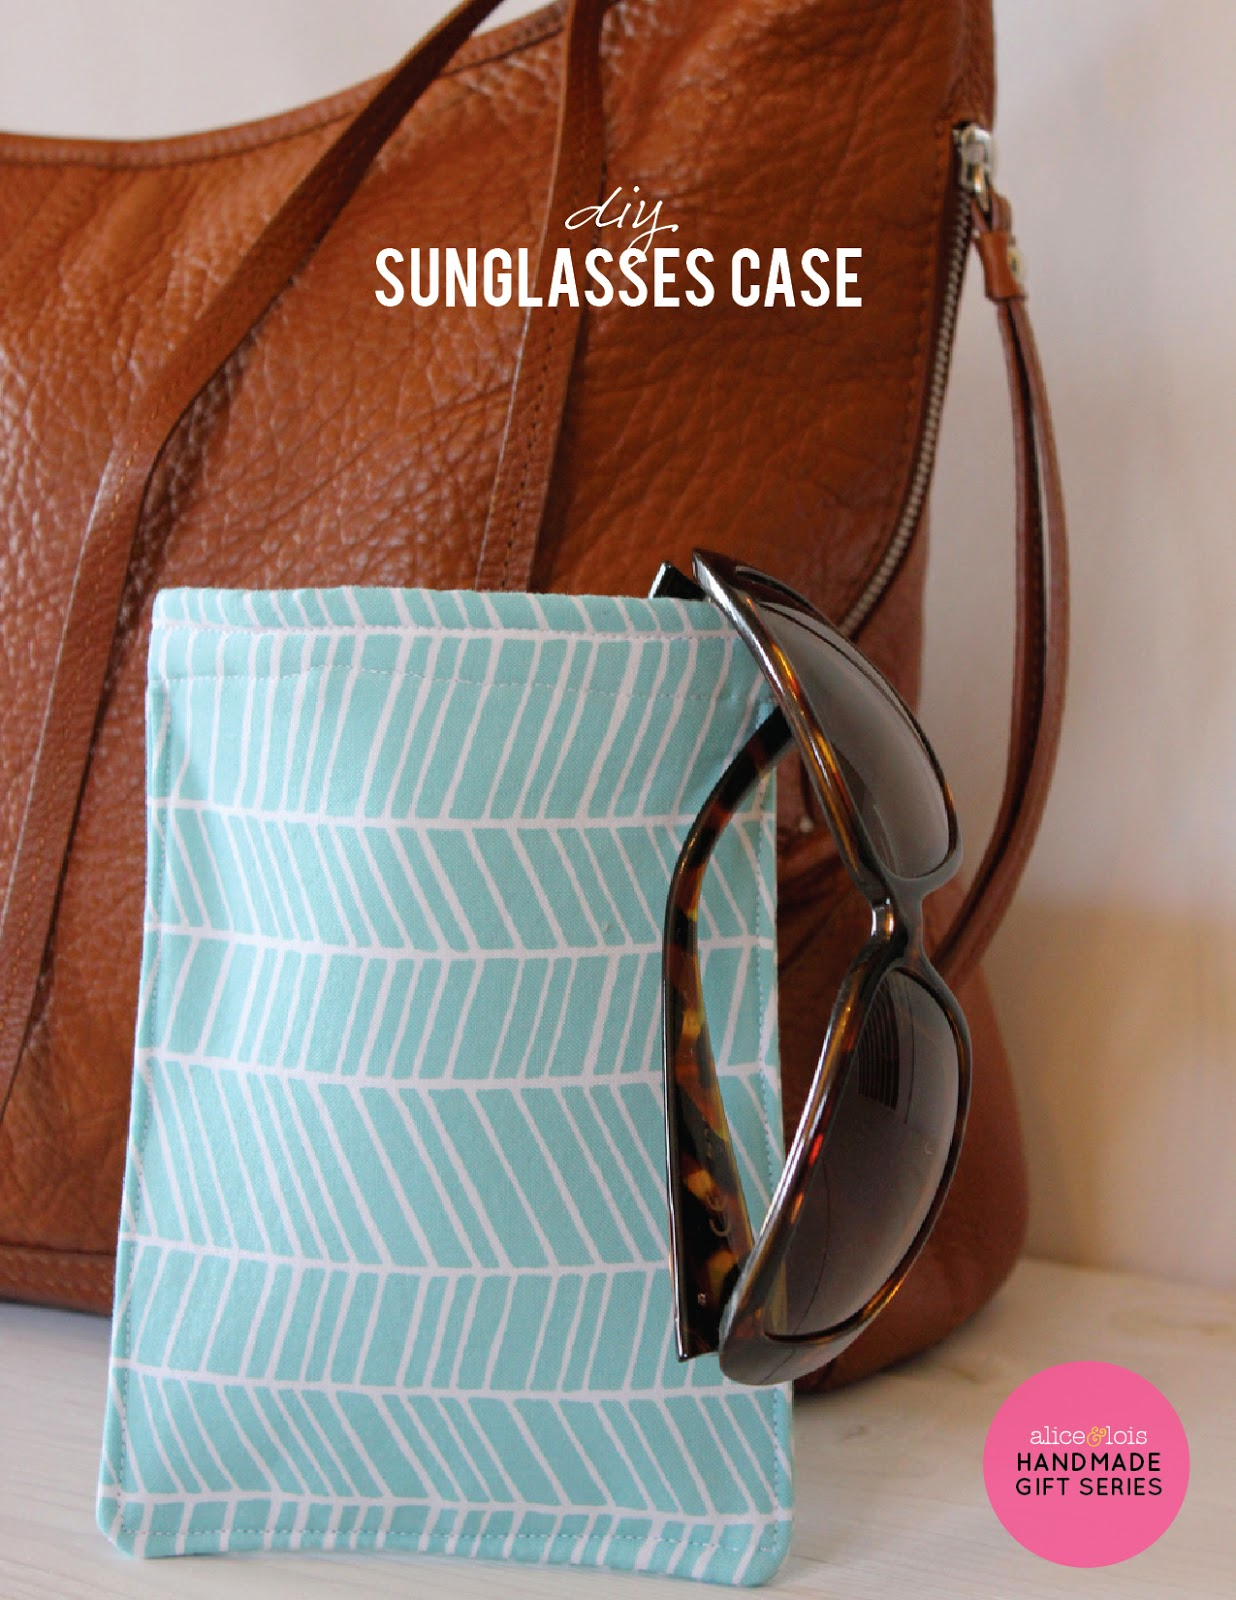 http://aliceandlois.com/diy-sunglasses-case-handmade-gift-series/